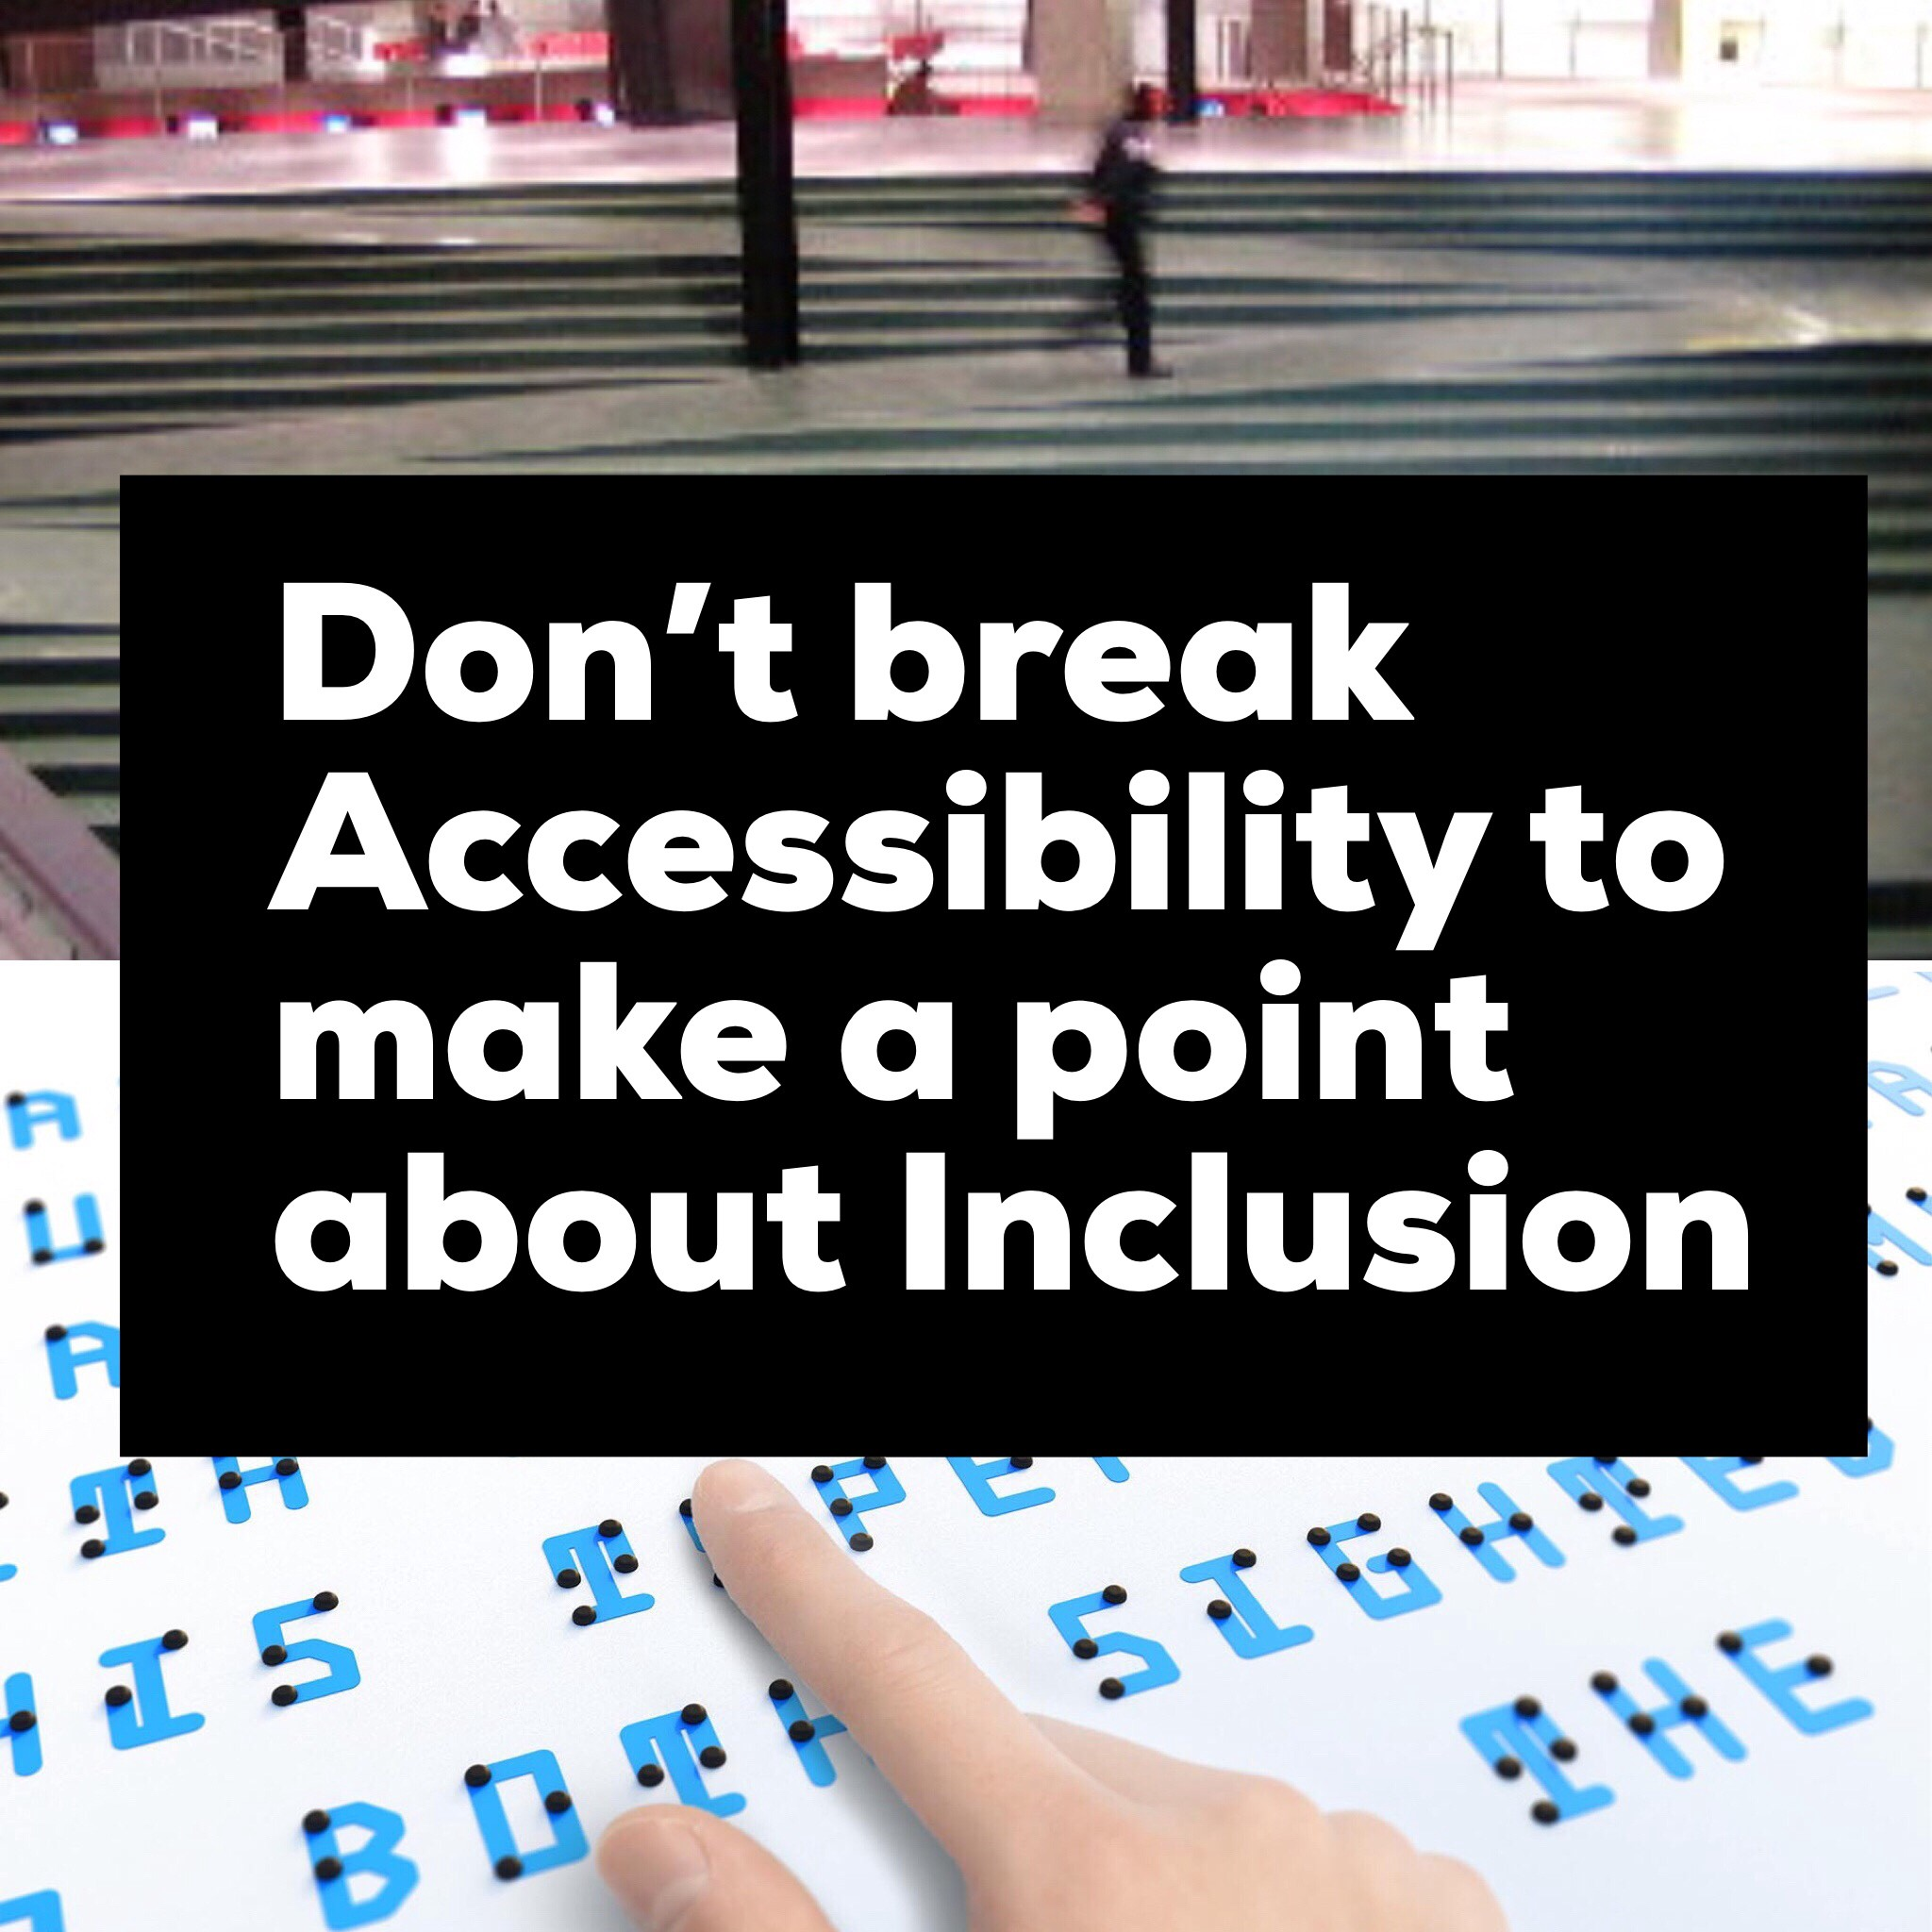 Text — Don't break accessibility to make a point about inclusion — laid over photo of Braille Neue mixed Braille/visual text